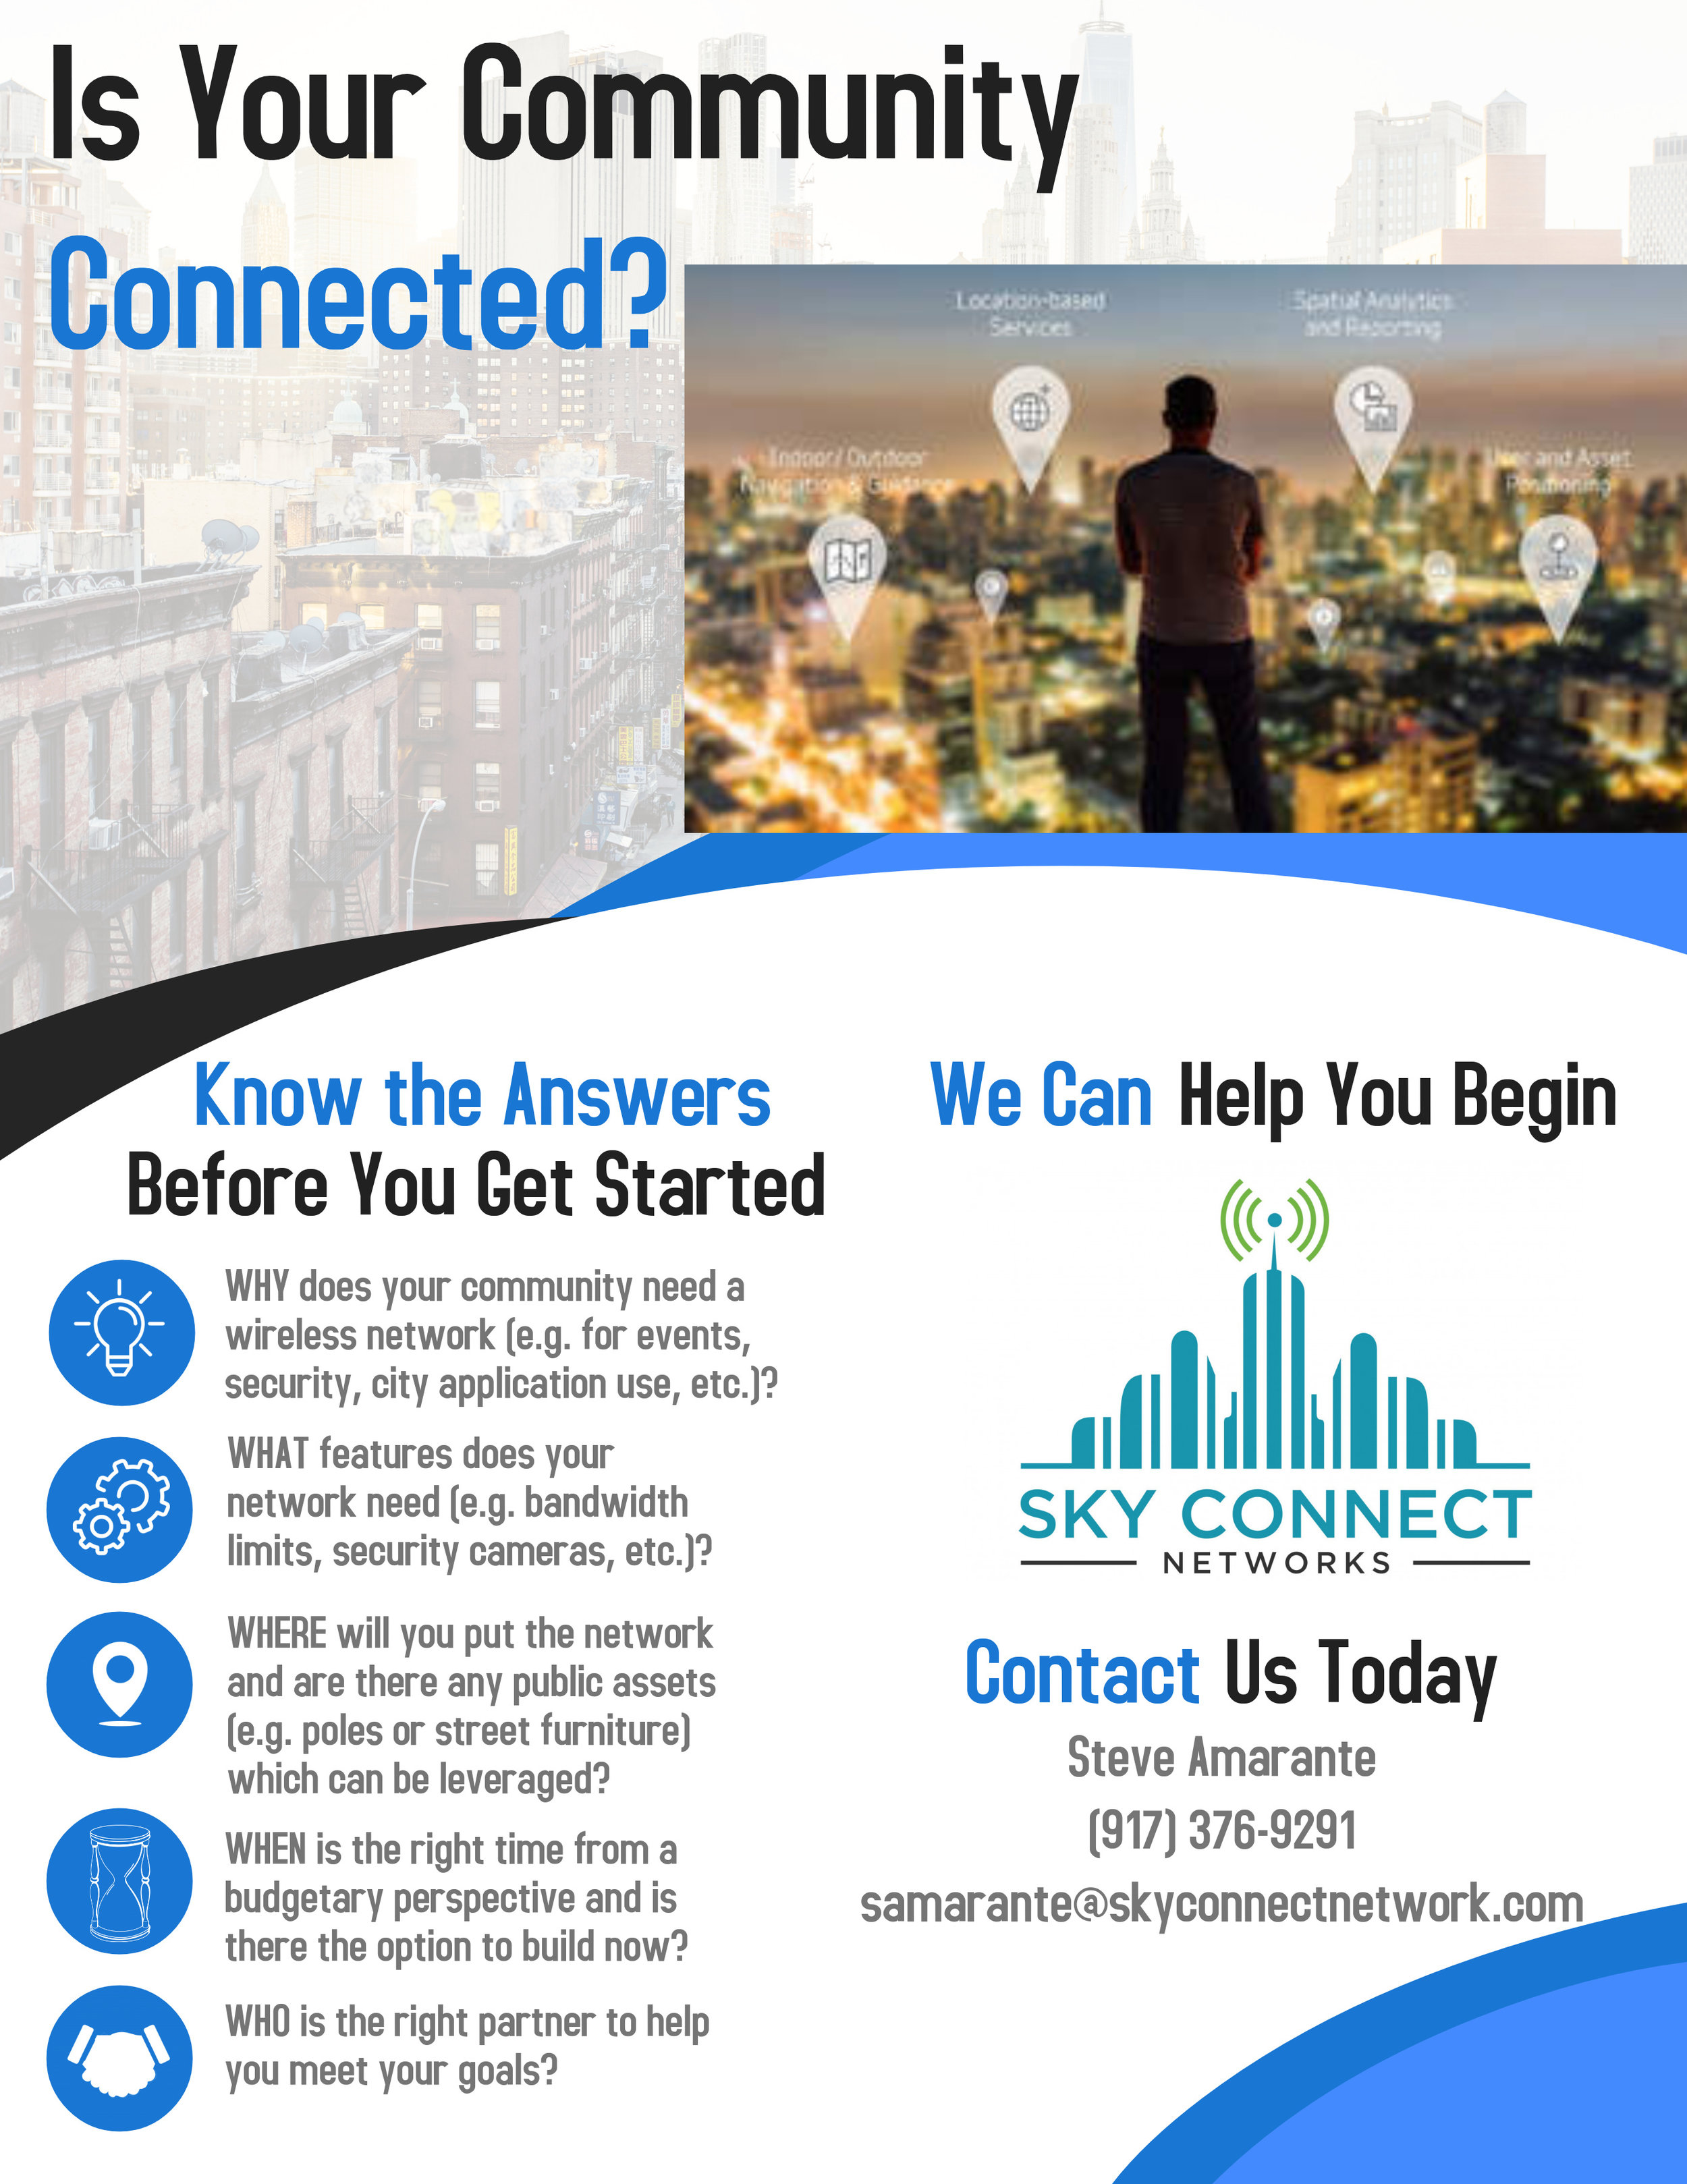 SCN Tipsheet for IDEA Connection _FINAL_12212018.jpg